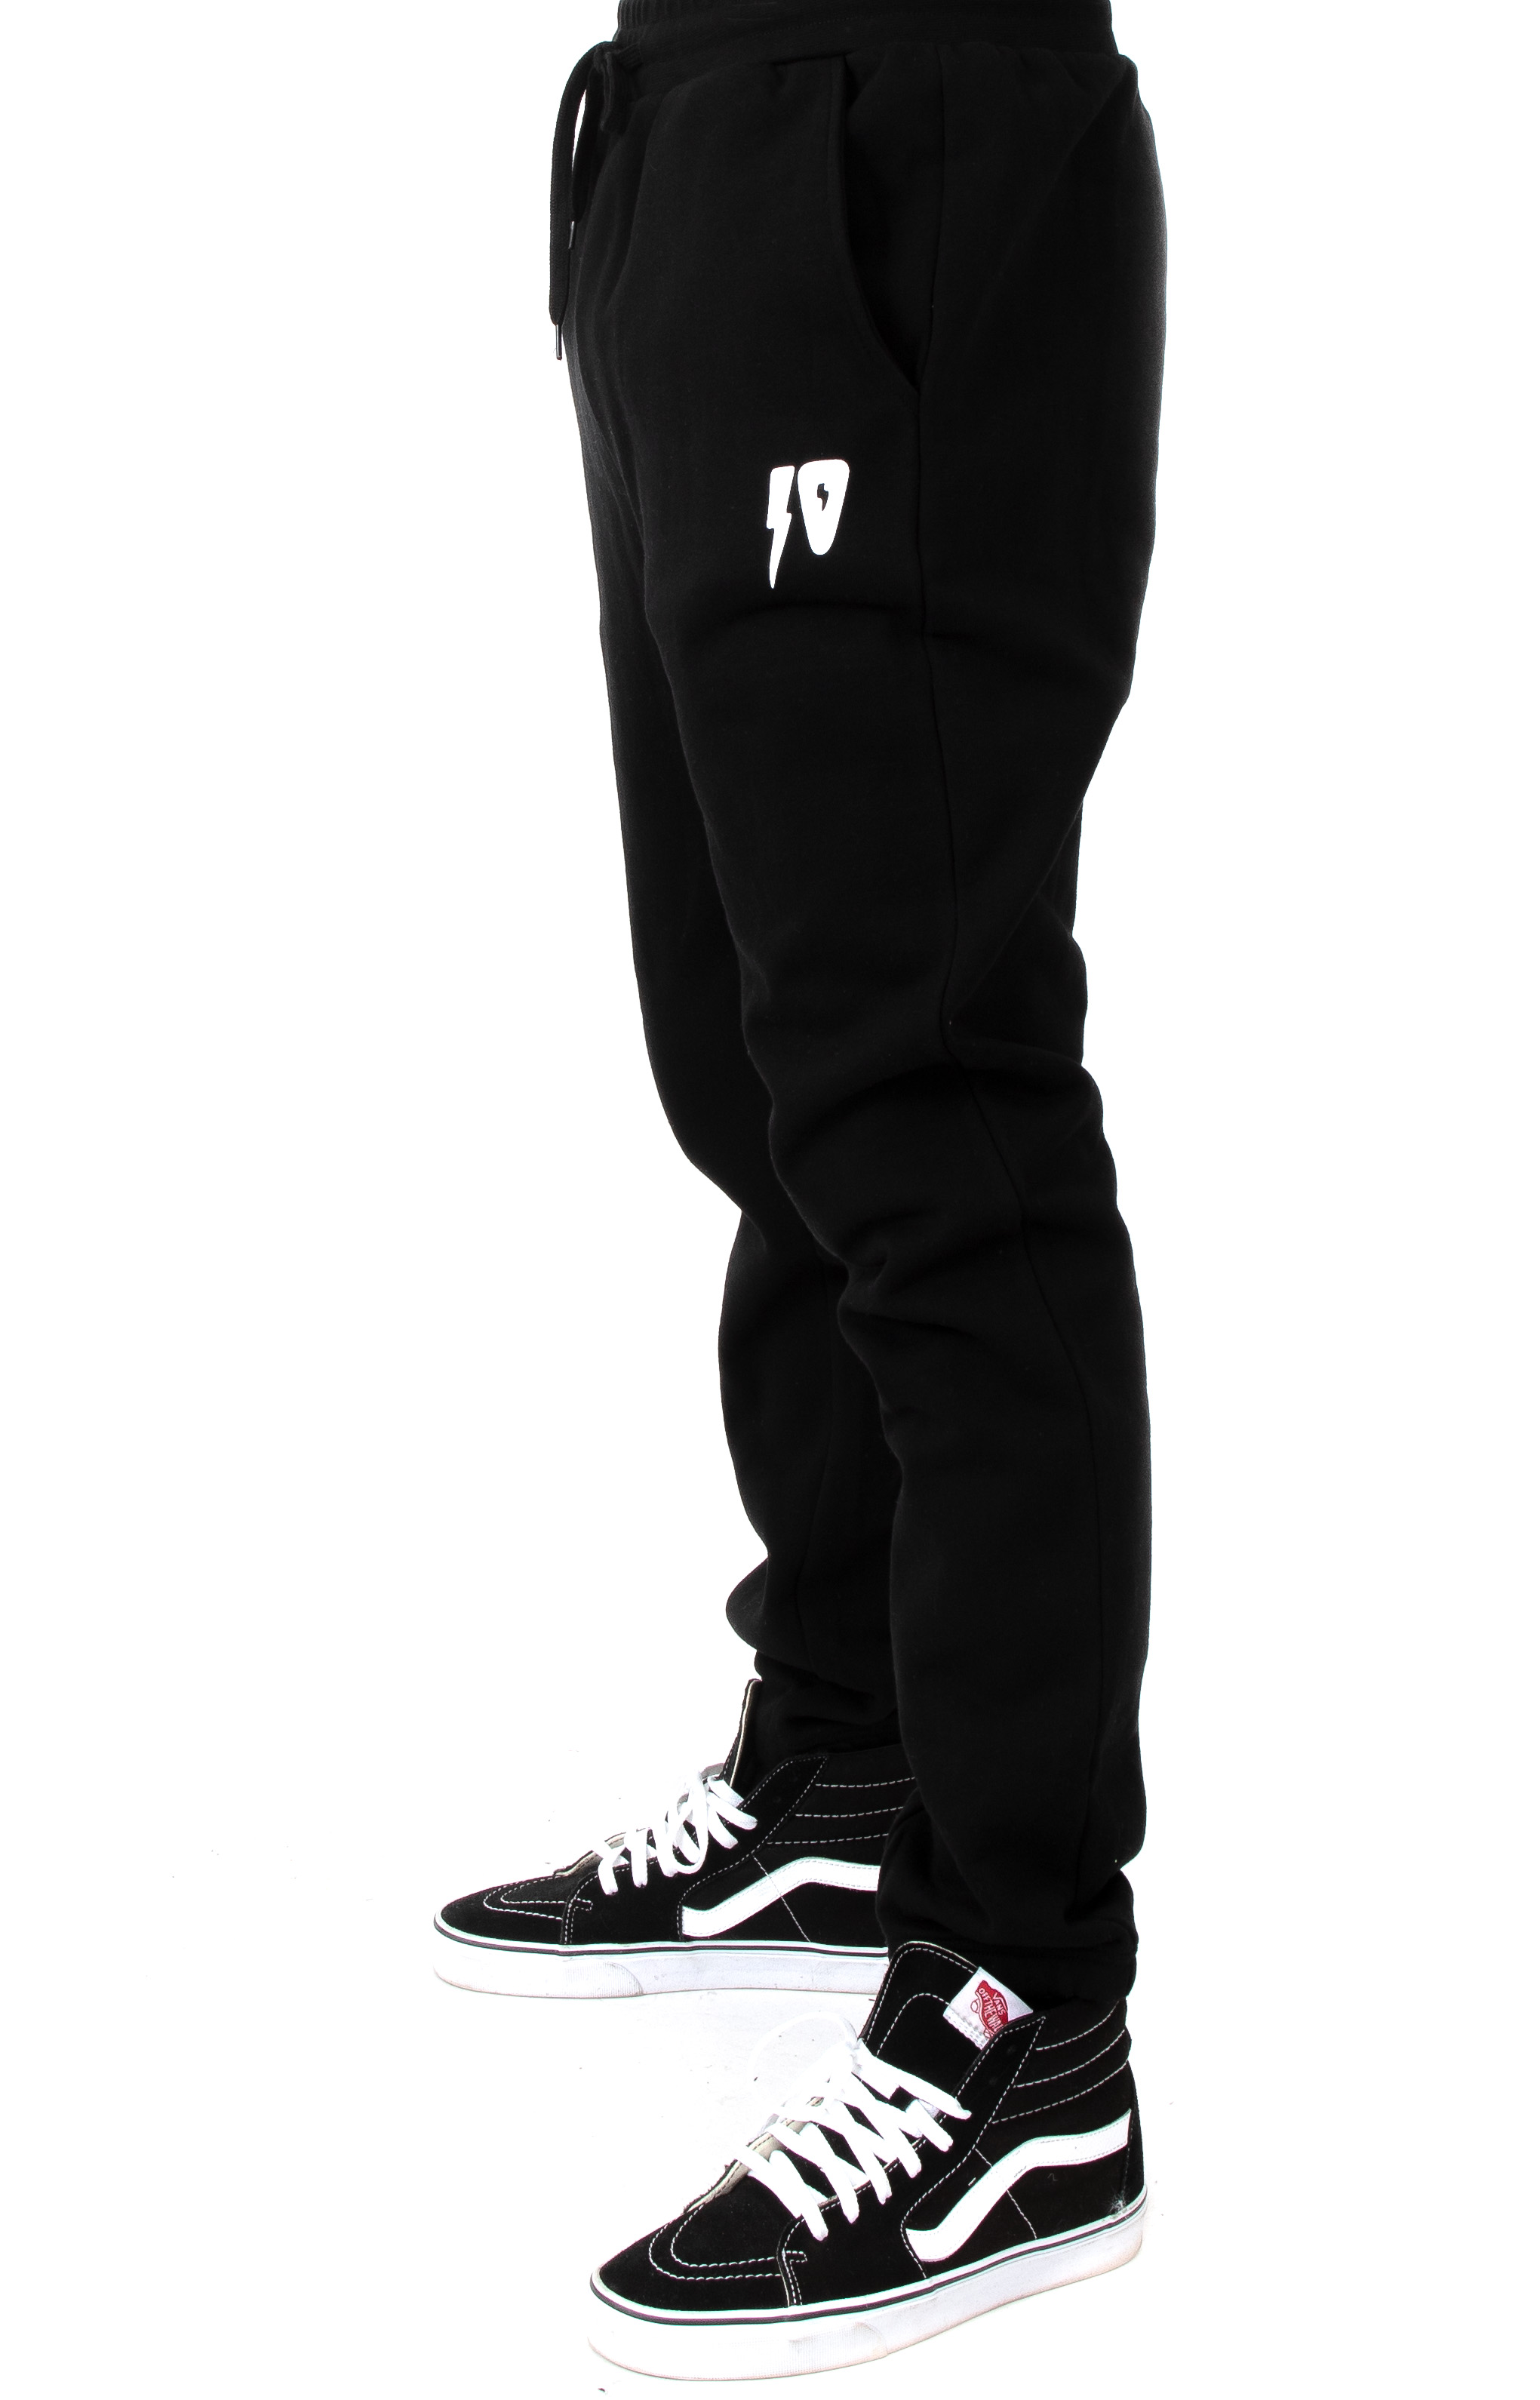 10 Strikes Sweatpant - Black